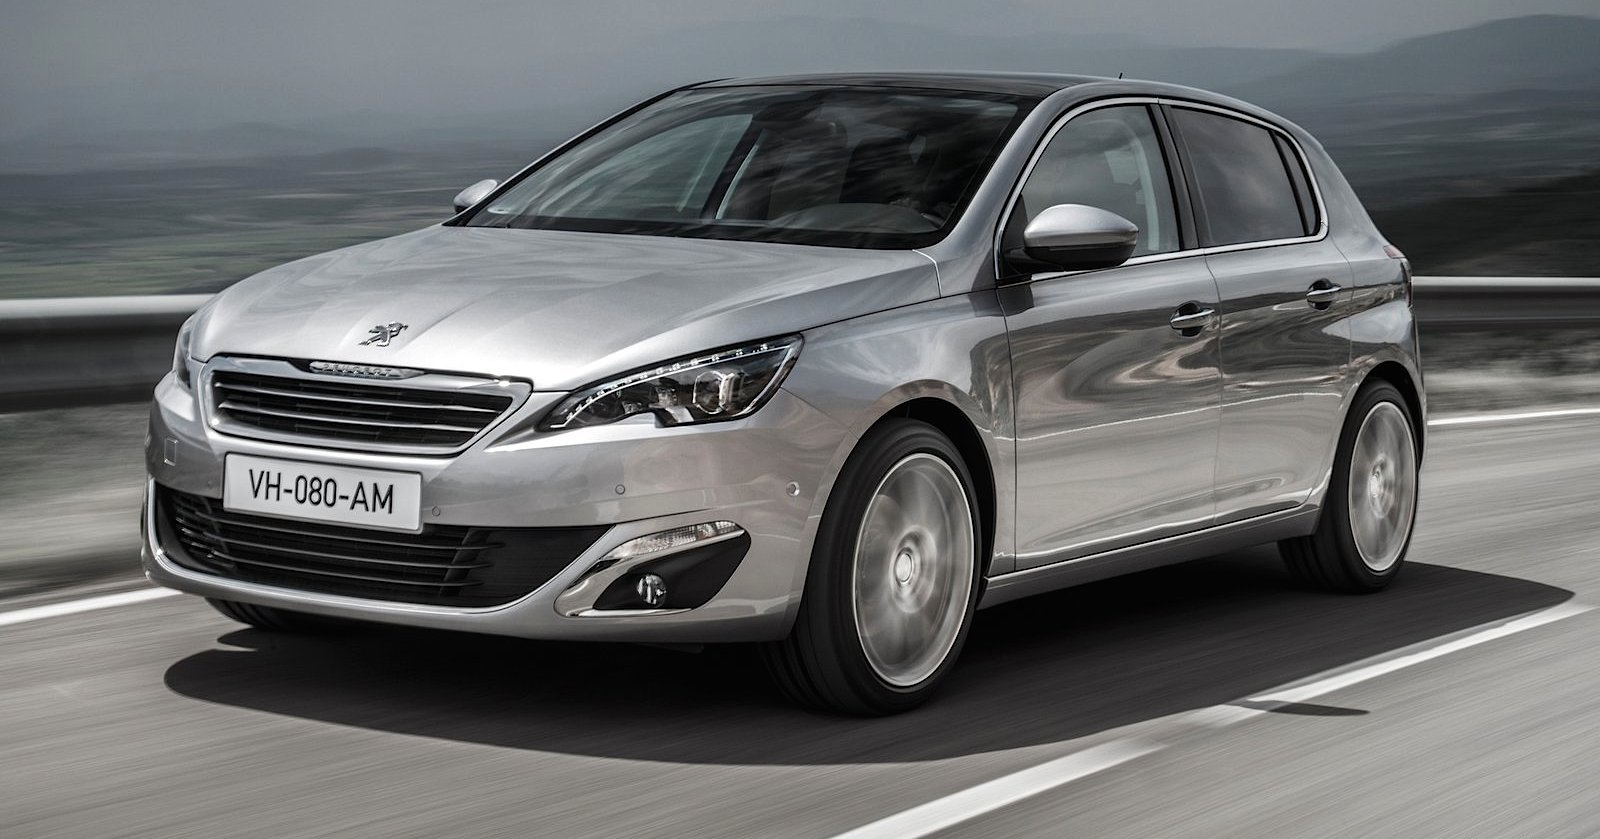 2015 peugeot 308 australian technical specifications. Black Bedroom Furniture Sets. Home Design Ideas